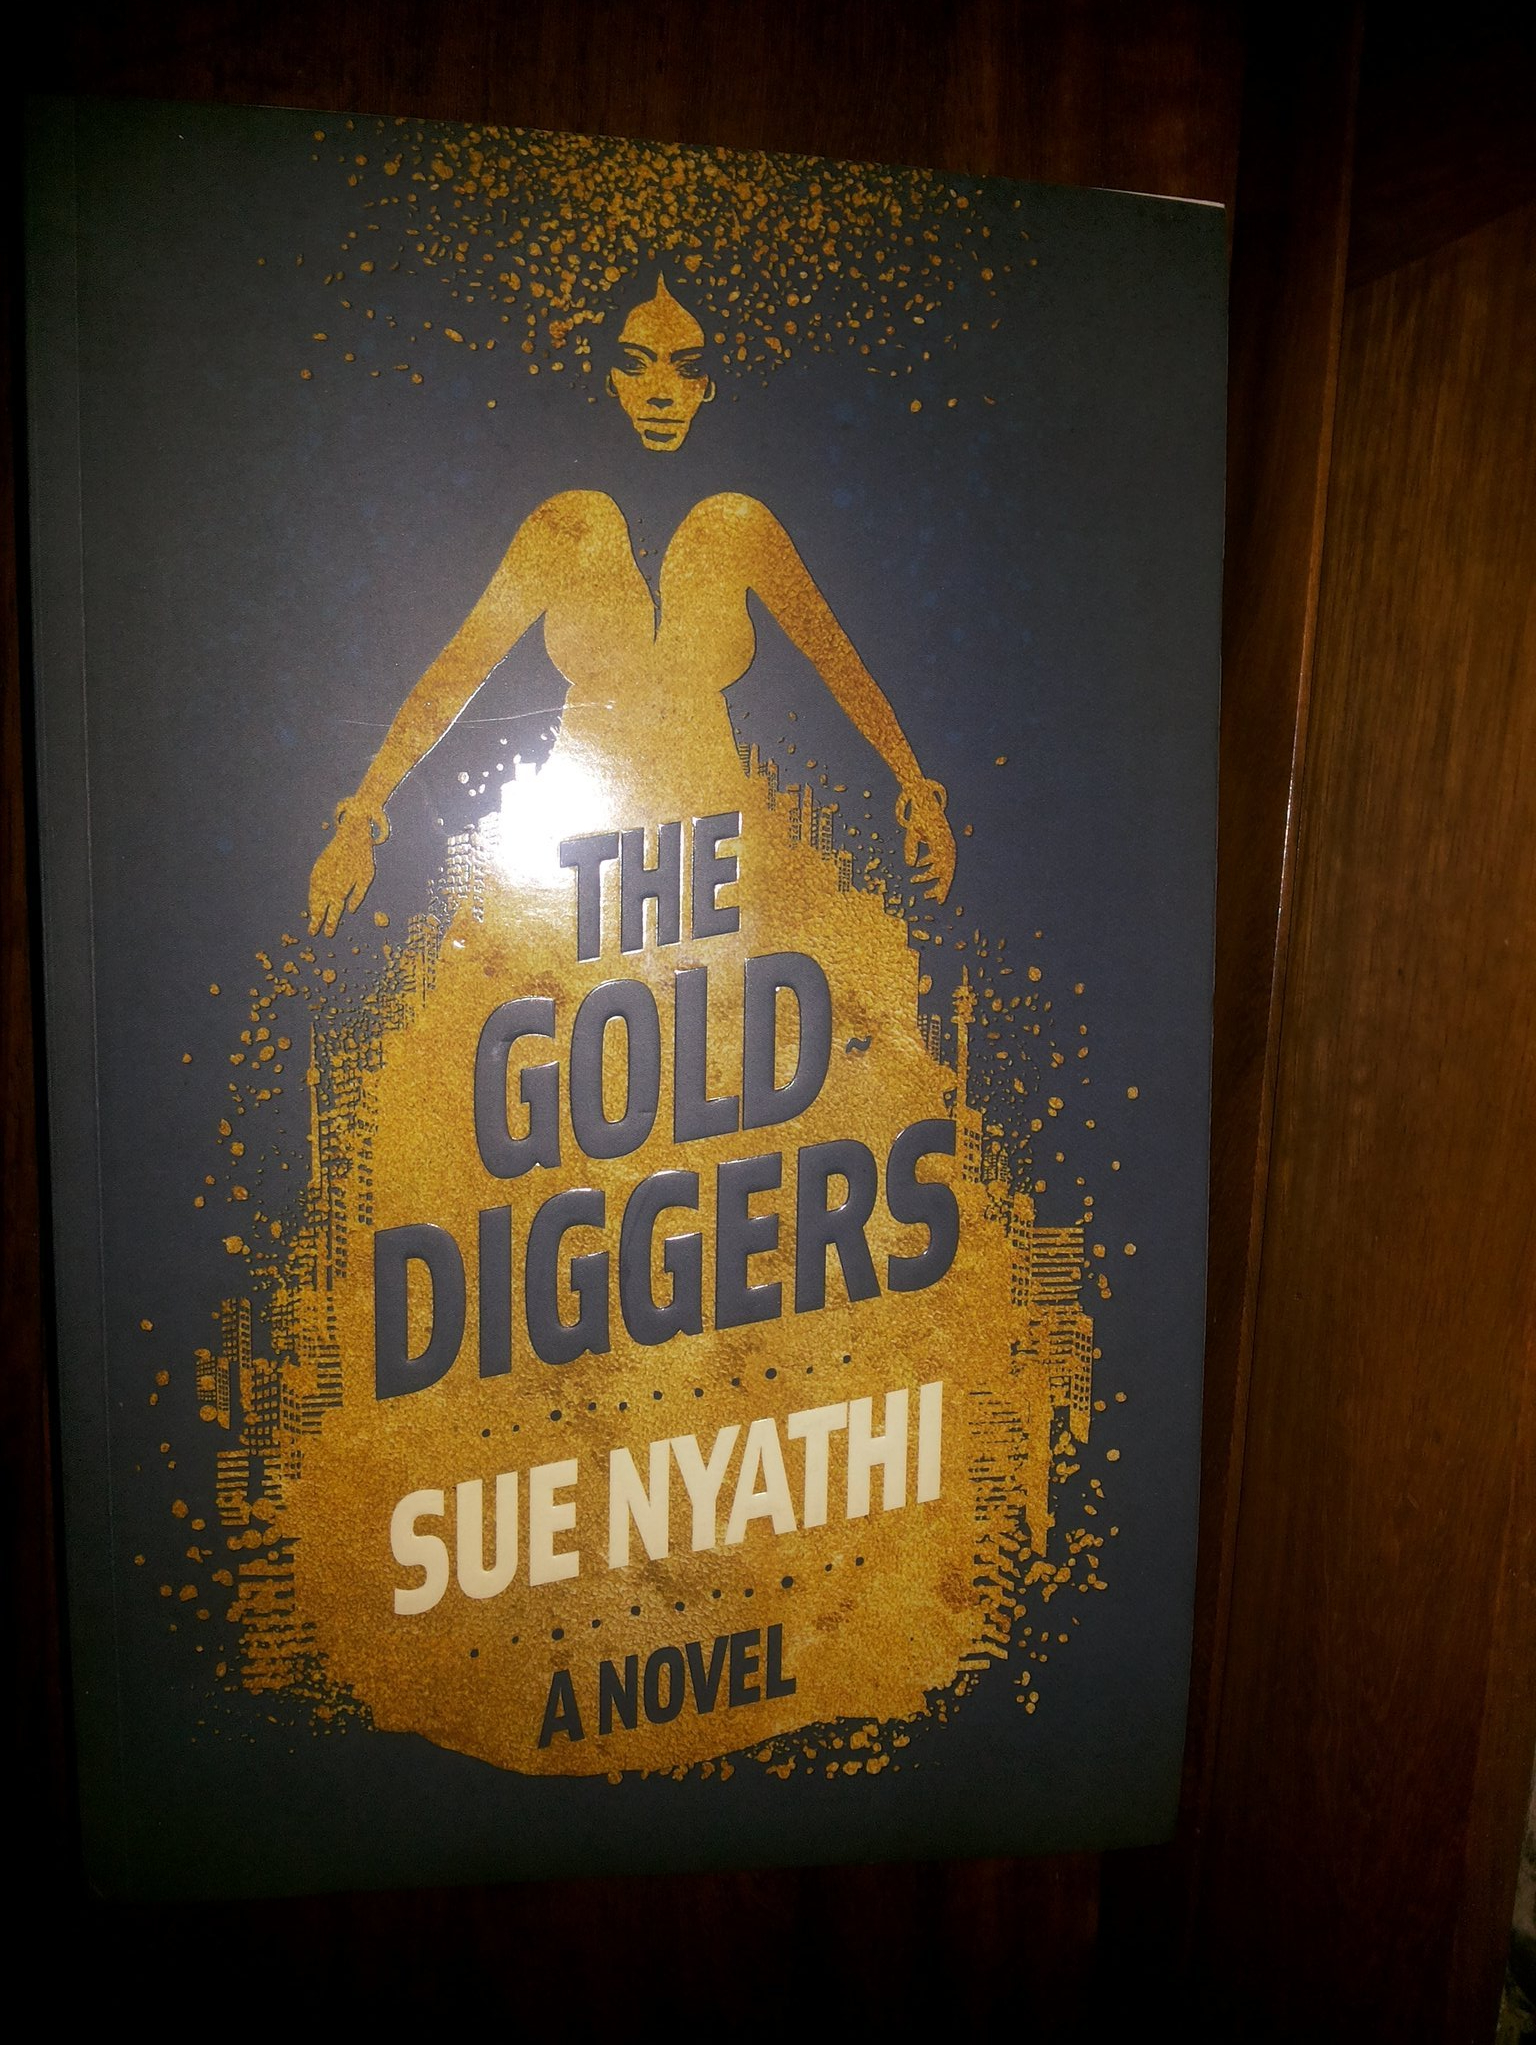 The Gold Diggers a novel by sue nyathi